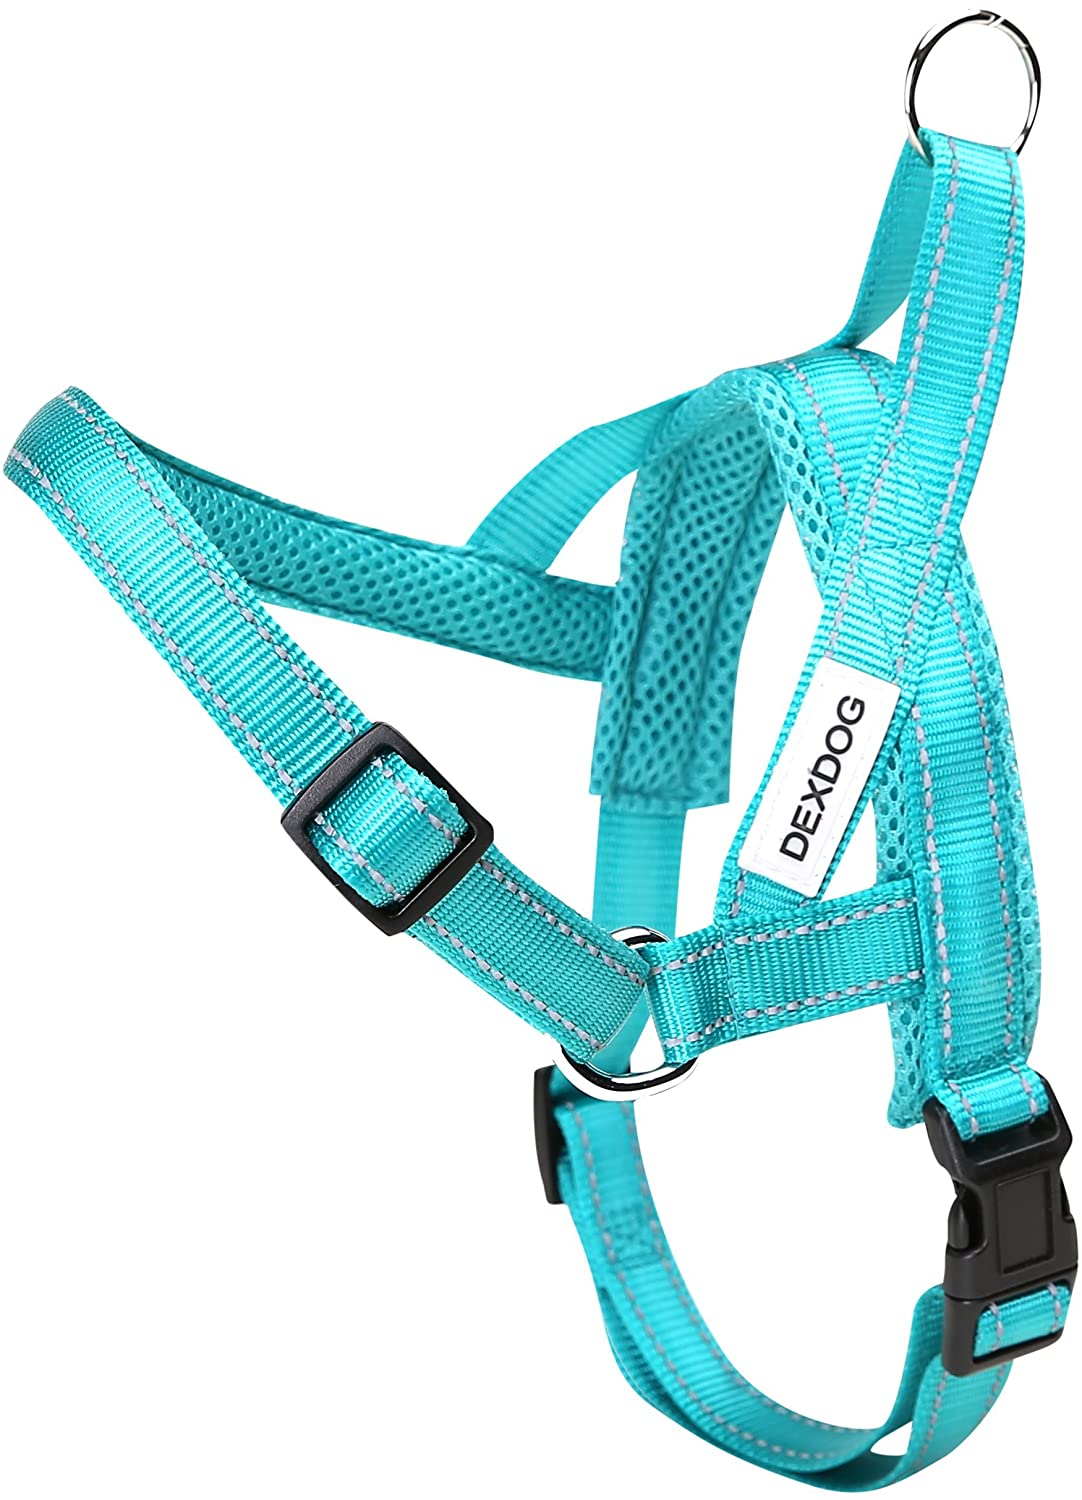 Turquoise X-Large Turquoise X-Large DEXDOG  1 Best Dog Harness EZHarness On Off Walk in Seconds  [Turquoise X-Large XL] Easy Quicker Step in Dog Harness Vest Puppy No Pull Reflective Mesh Handle Adjustable Training